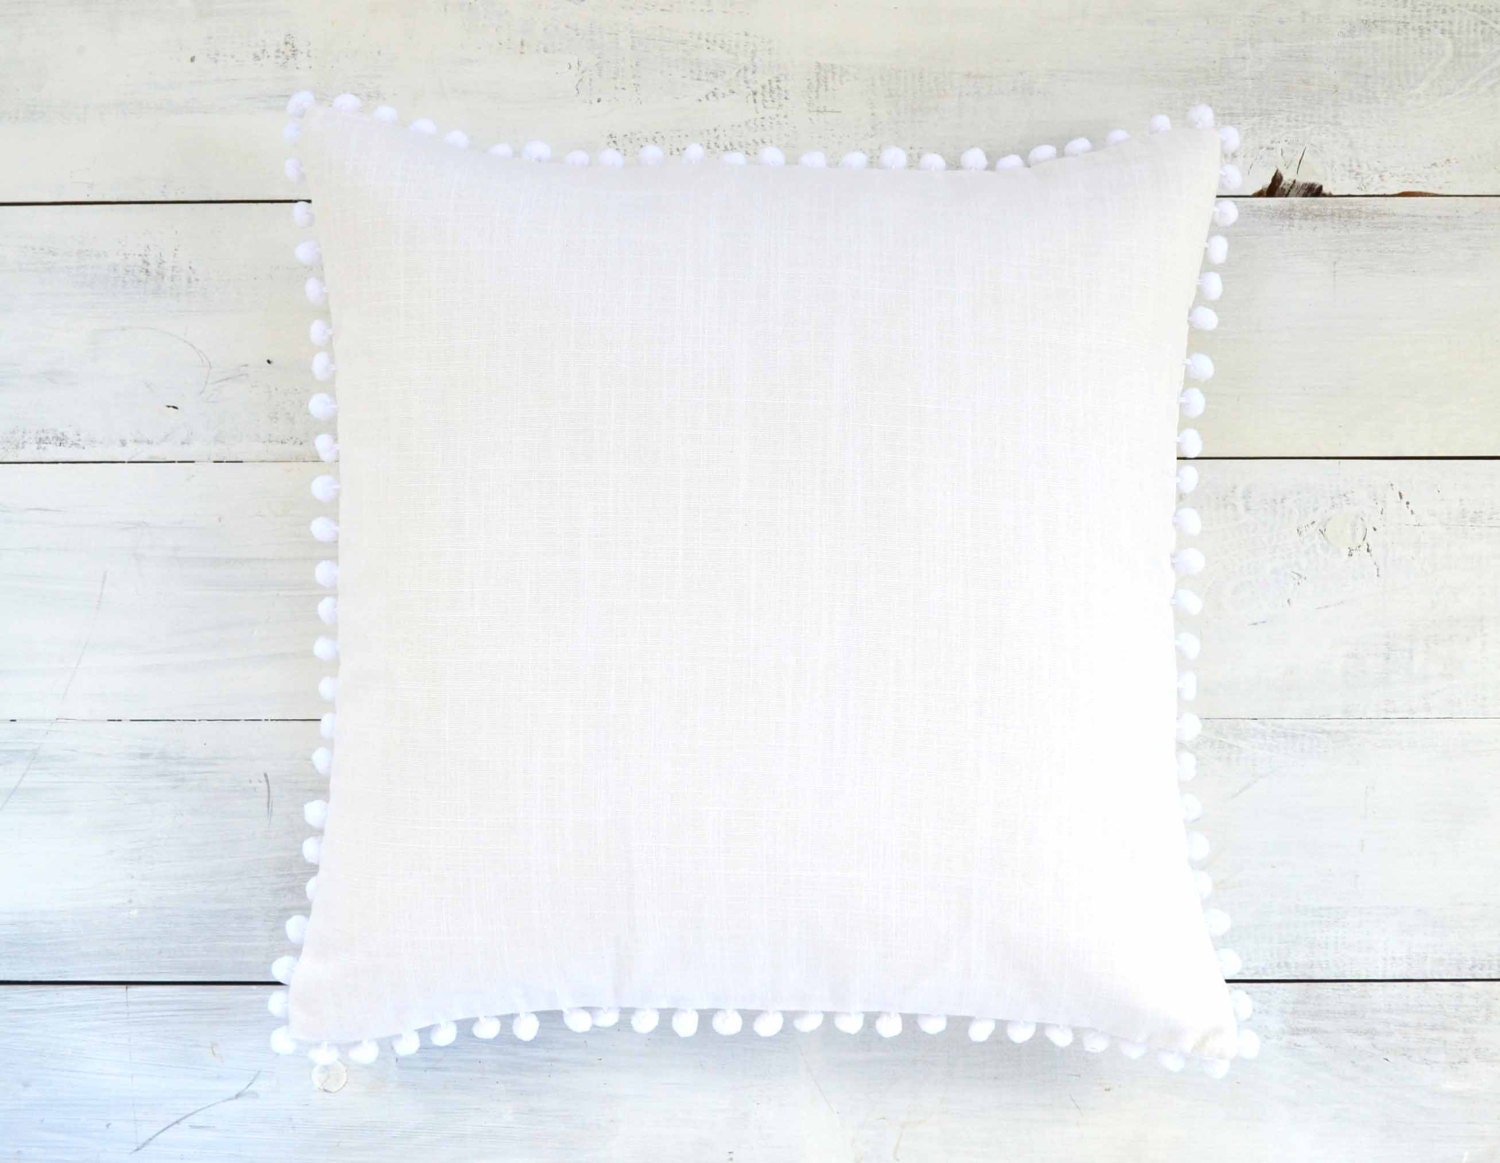 Throw Pillow Covers White : White Pom Pom Pillow Cover - 20 x 20 - Decorative Pillow, Throw Pillow, Pom Pom Pillow Cover ...